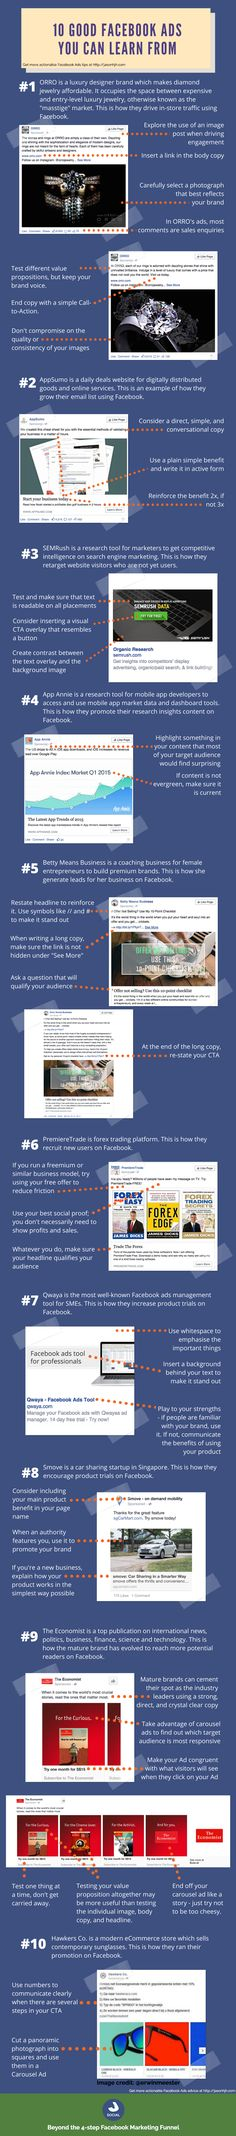 10 Good Facebook Ads You Can Learn From | http://www.jasonhjh.com/2015/07/10-good-facebook-ads/ - Jul 10, 2015